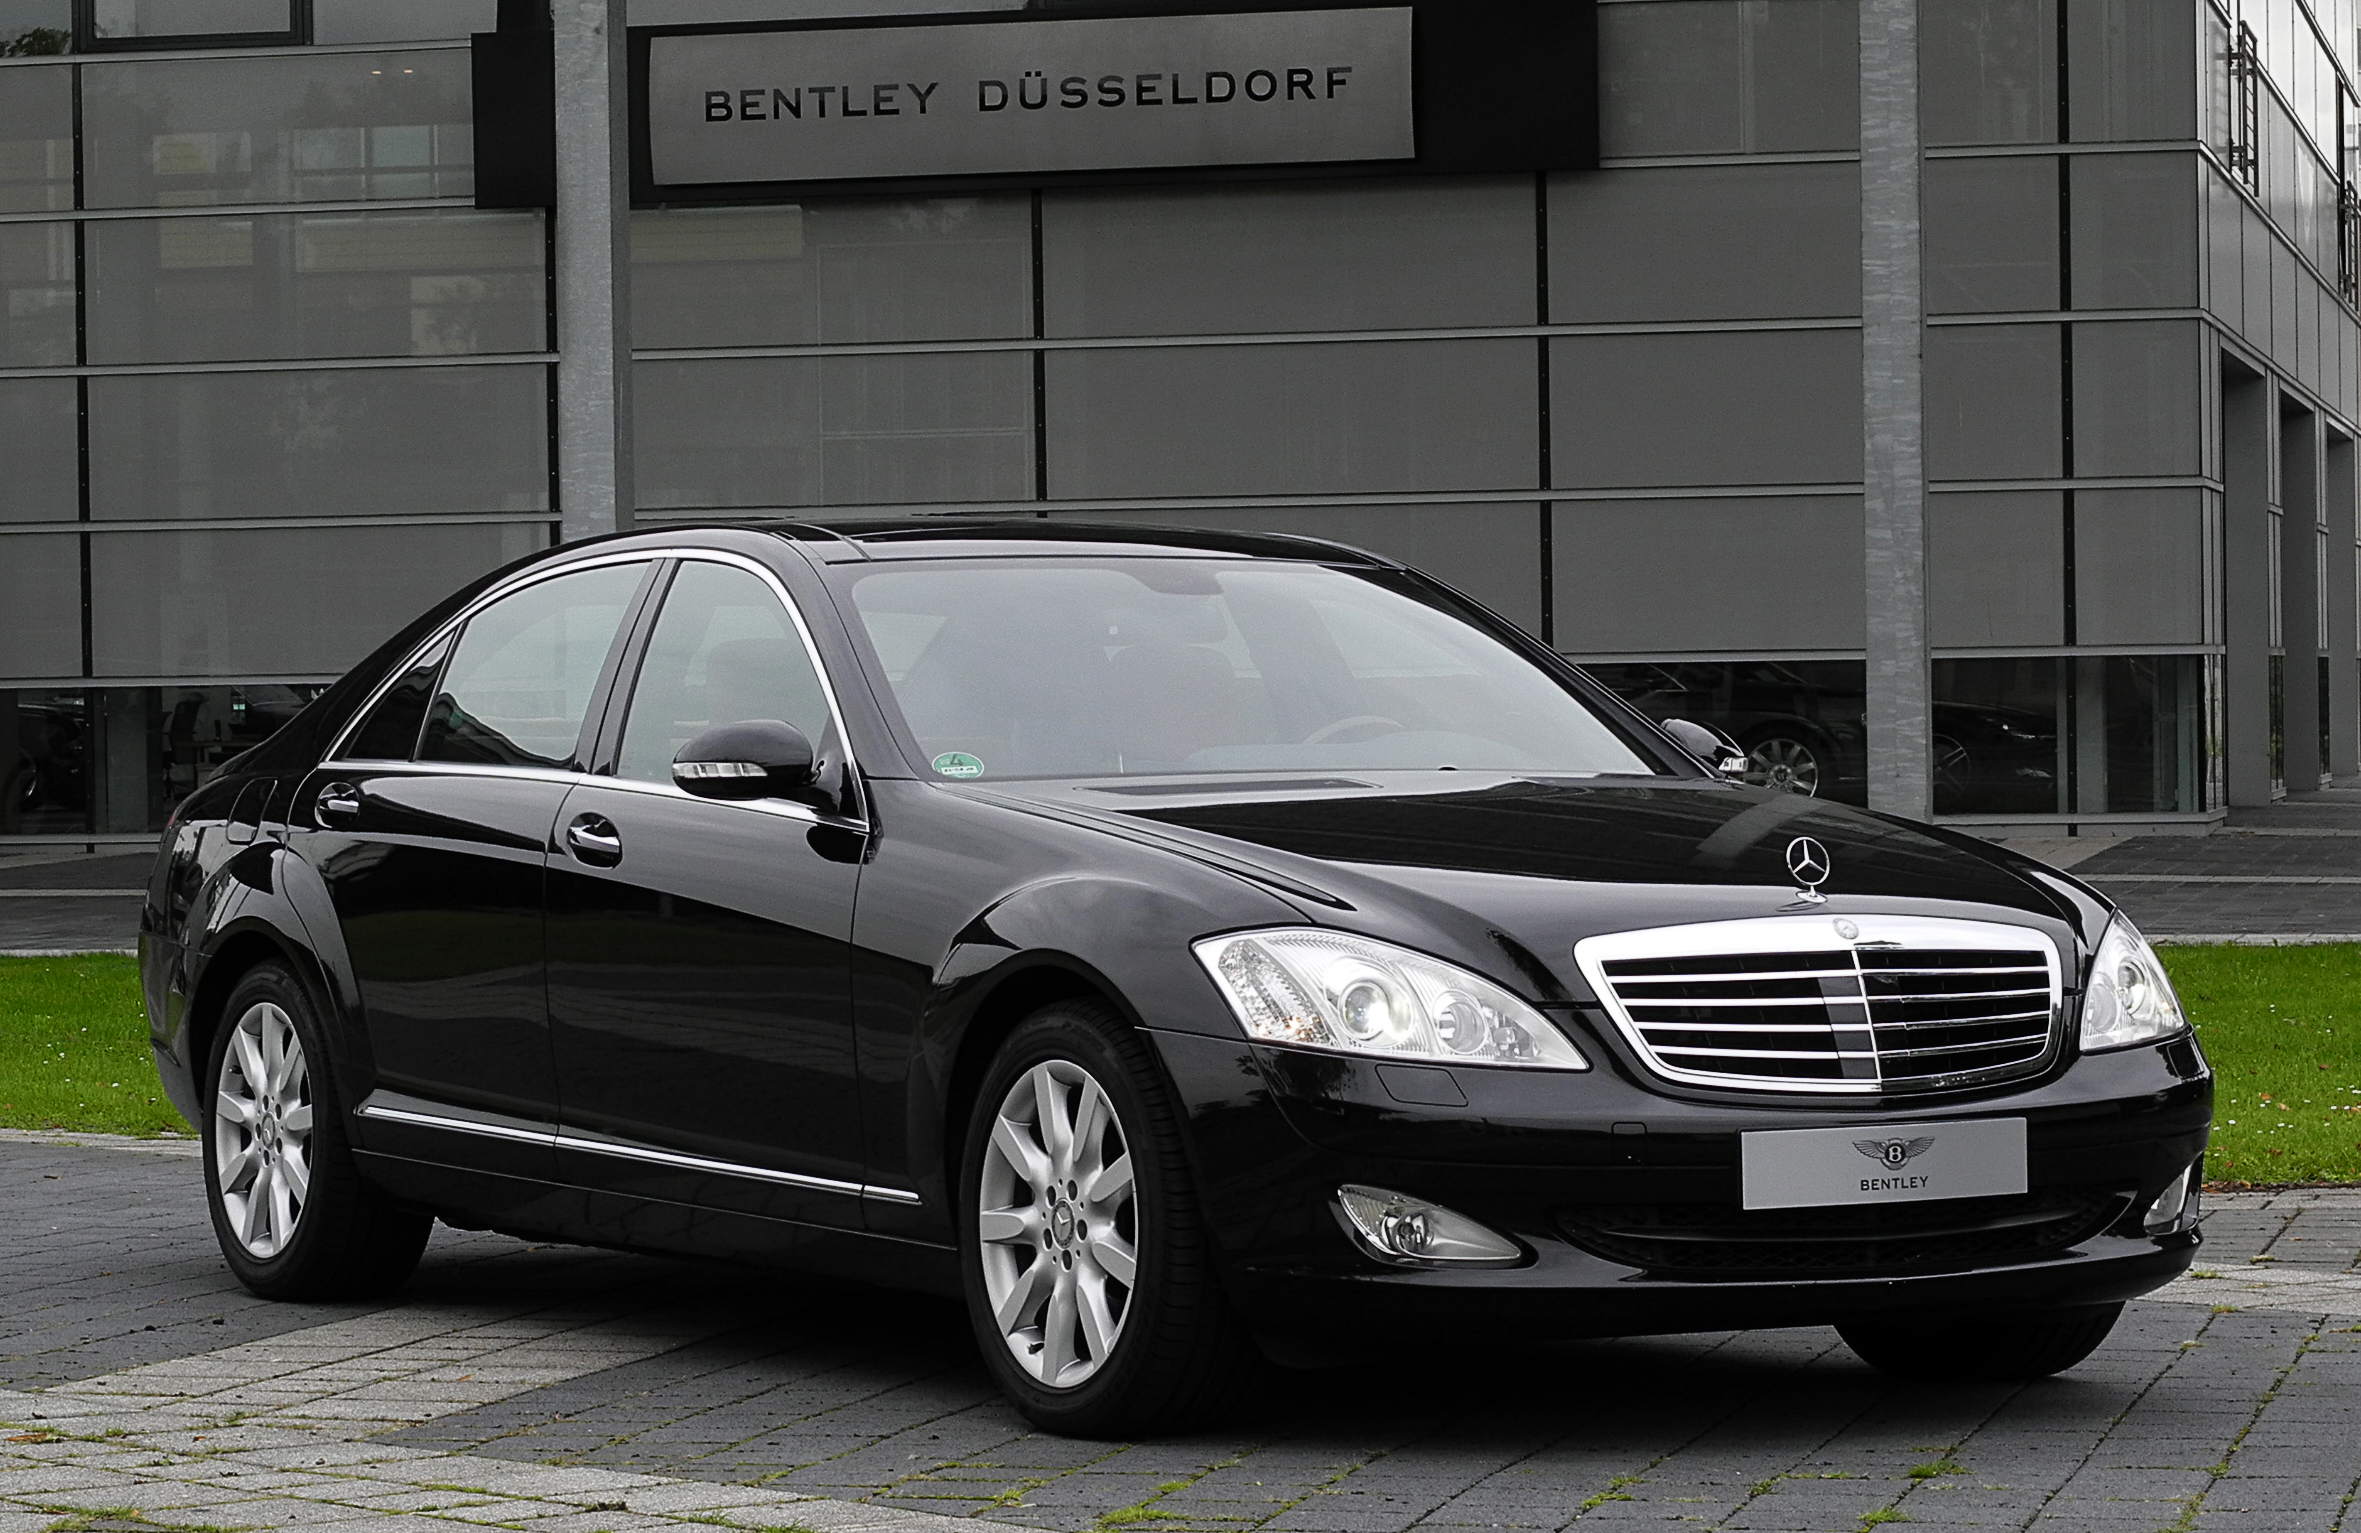 Mercedes-Benz S-Class (W221) - Wikipedia, the free encyclopedia